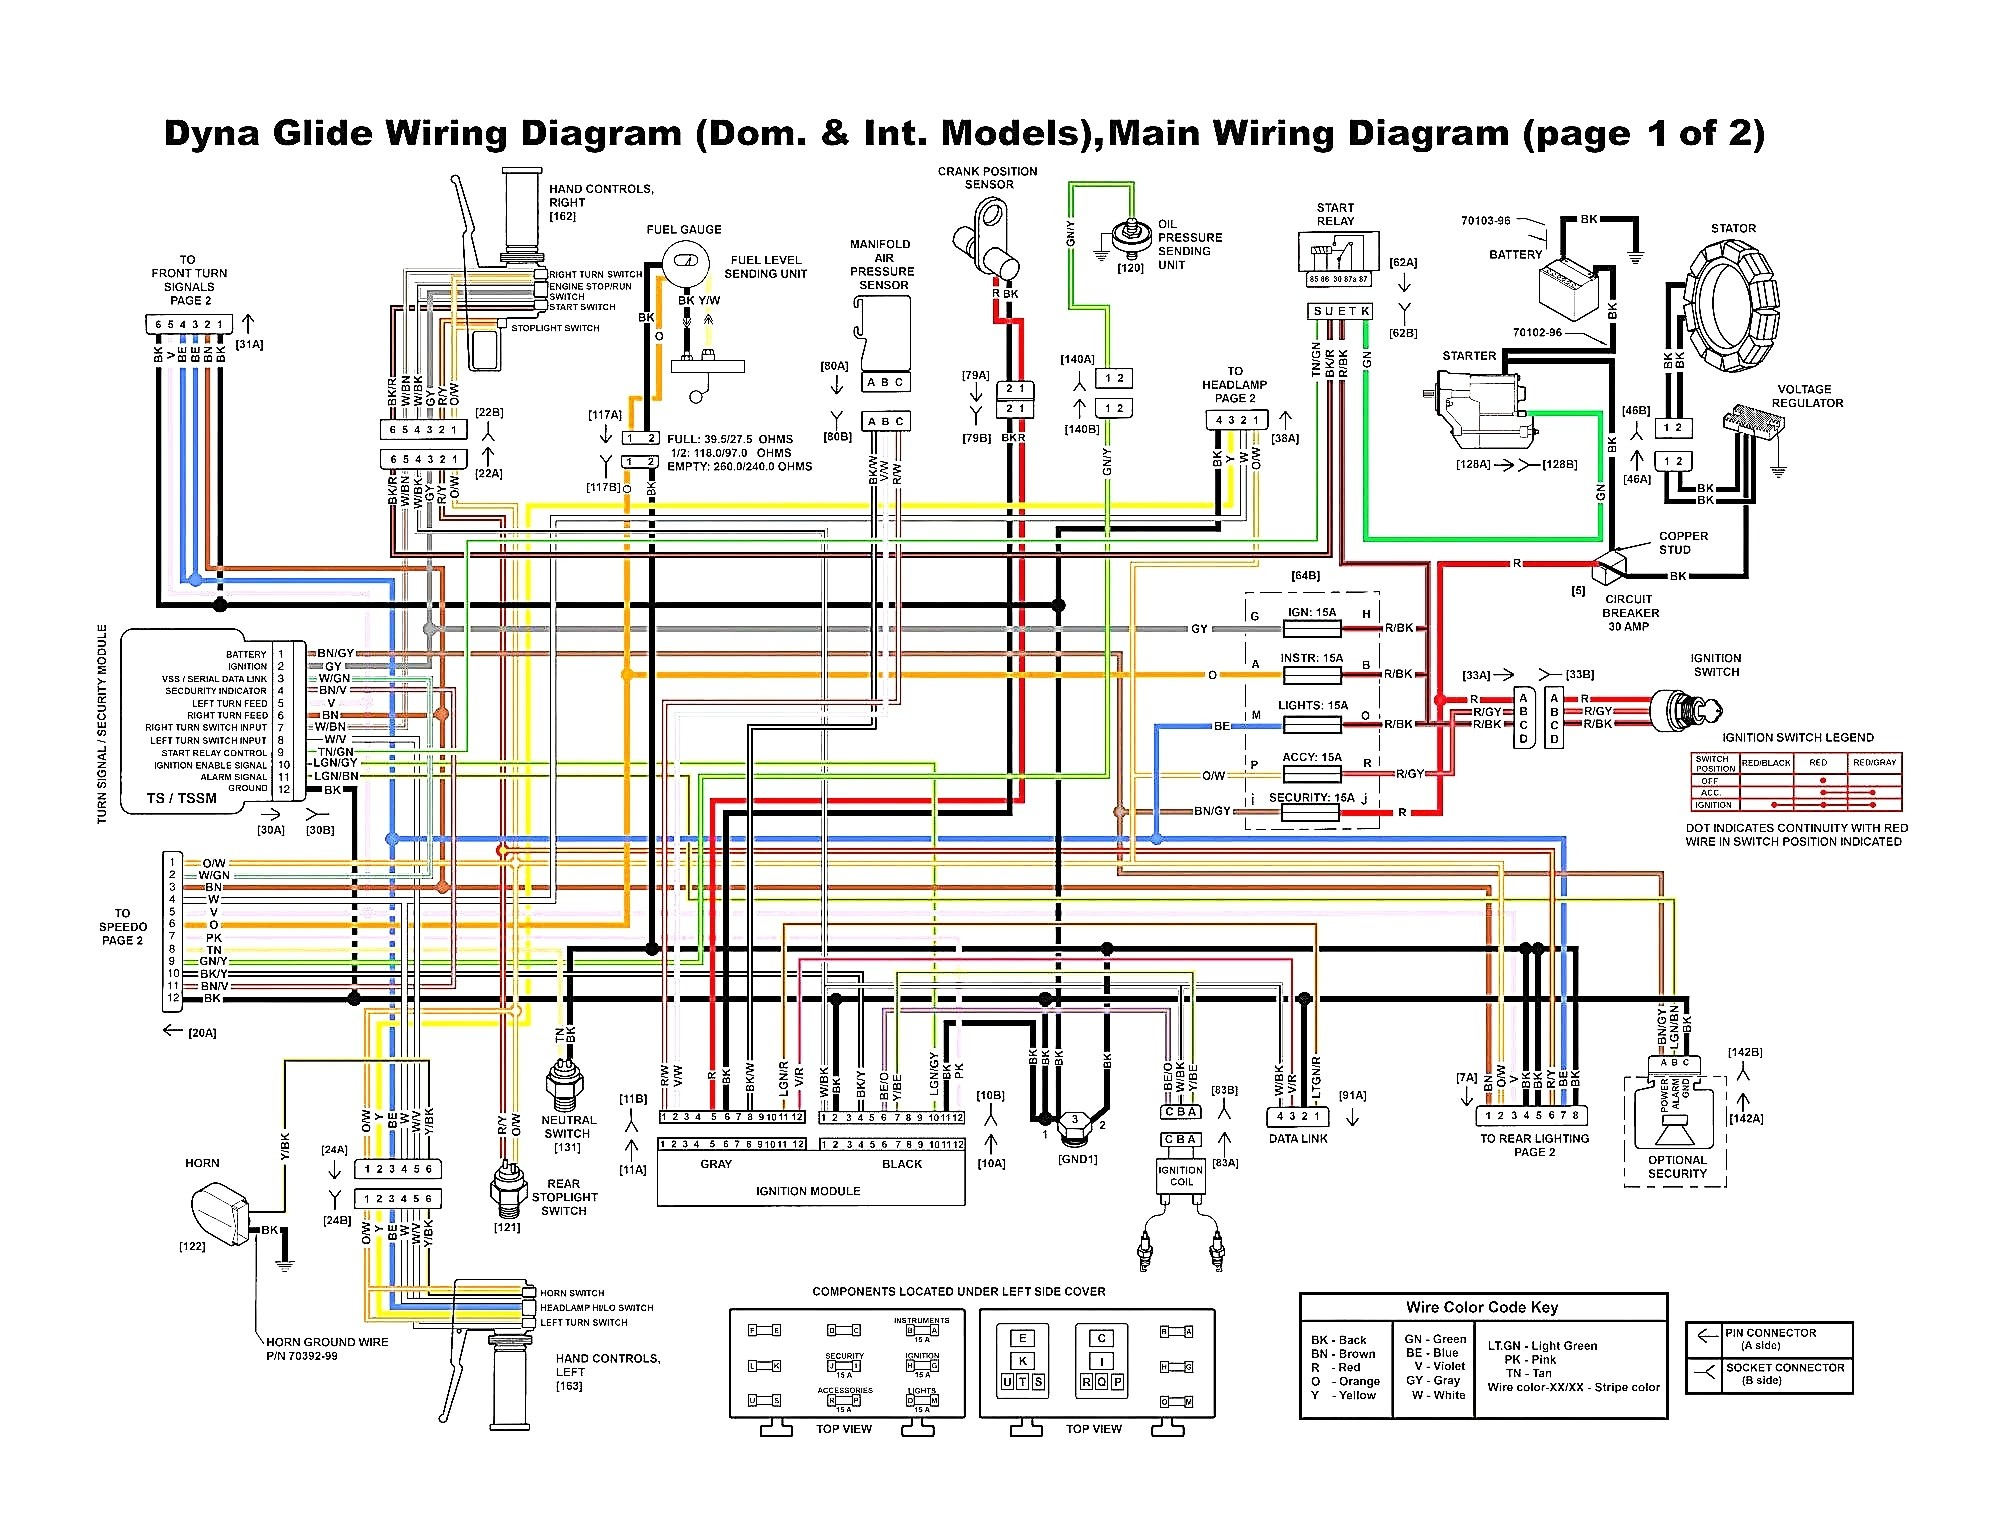 Harley Davidson Wiring Harness Diagram Wp105 | Wiring Diagram on